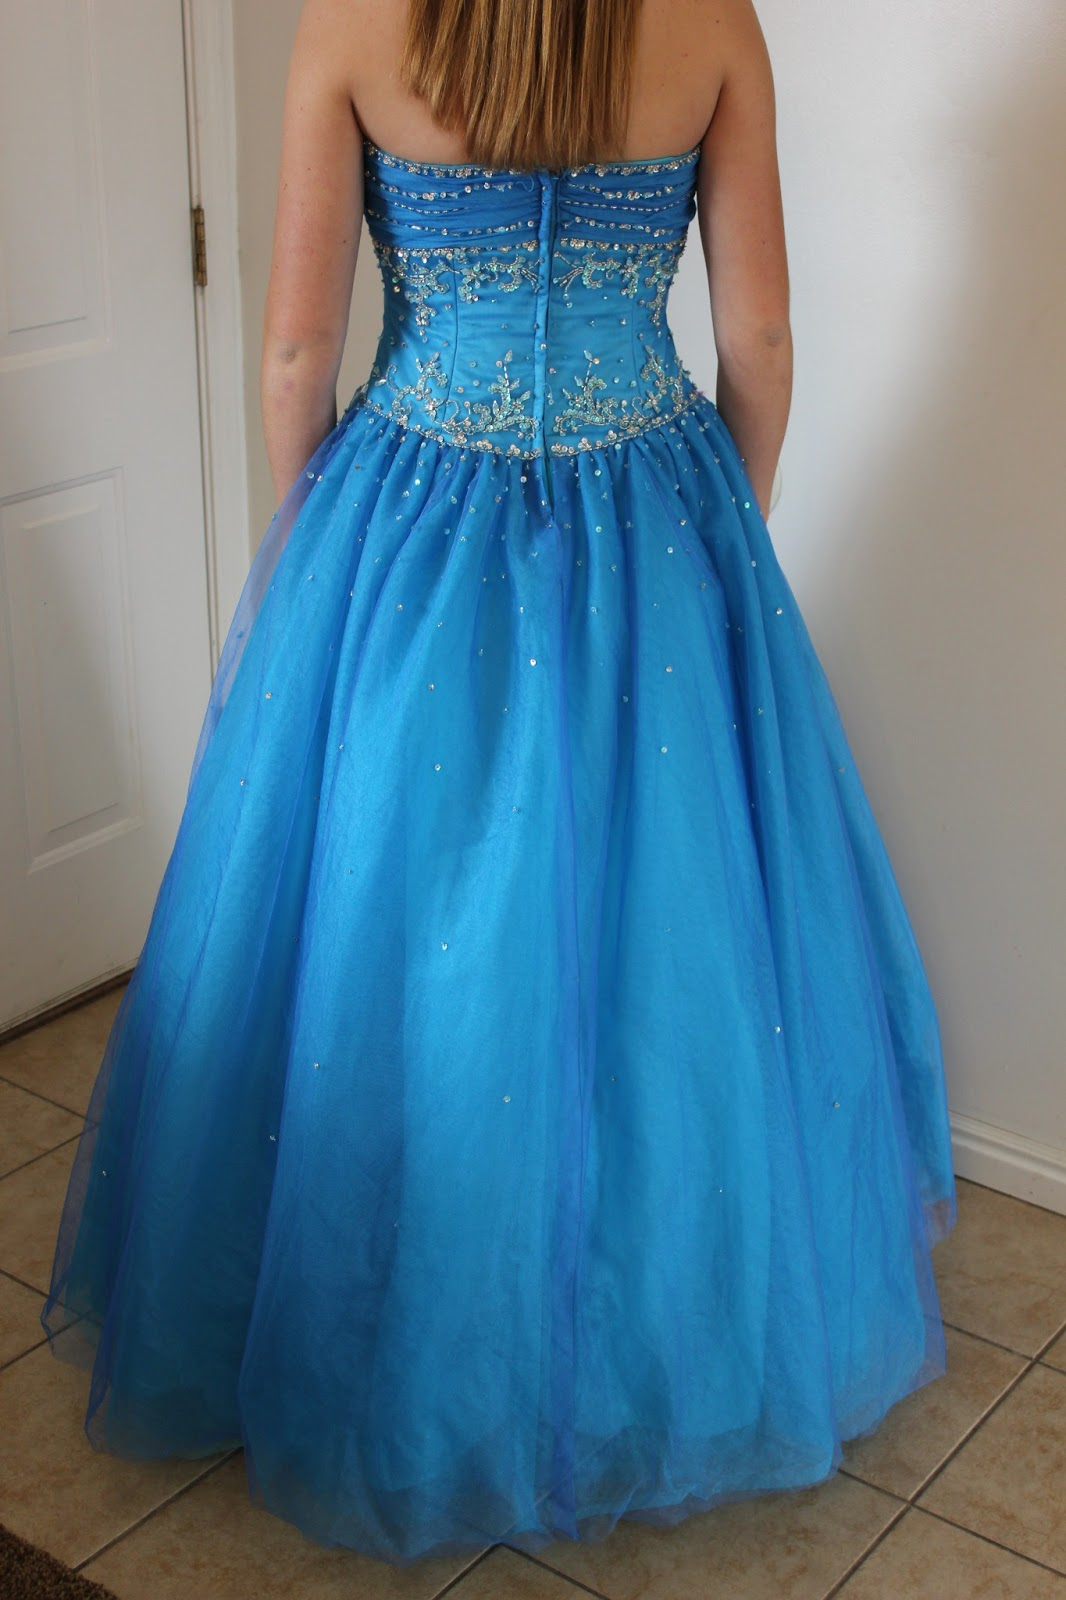 Rent Dresses For Prom - Holiday Dresses